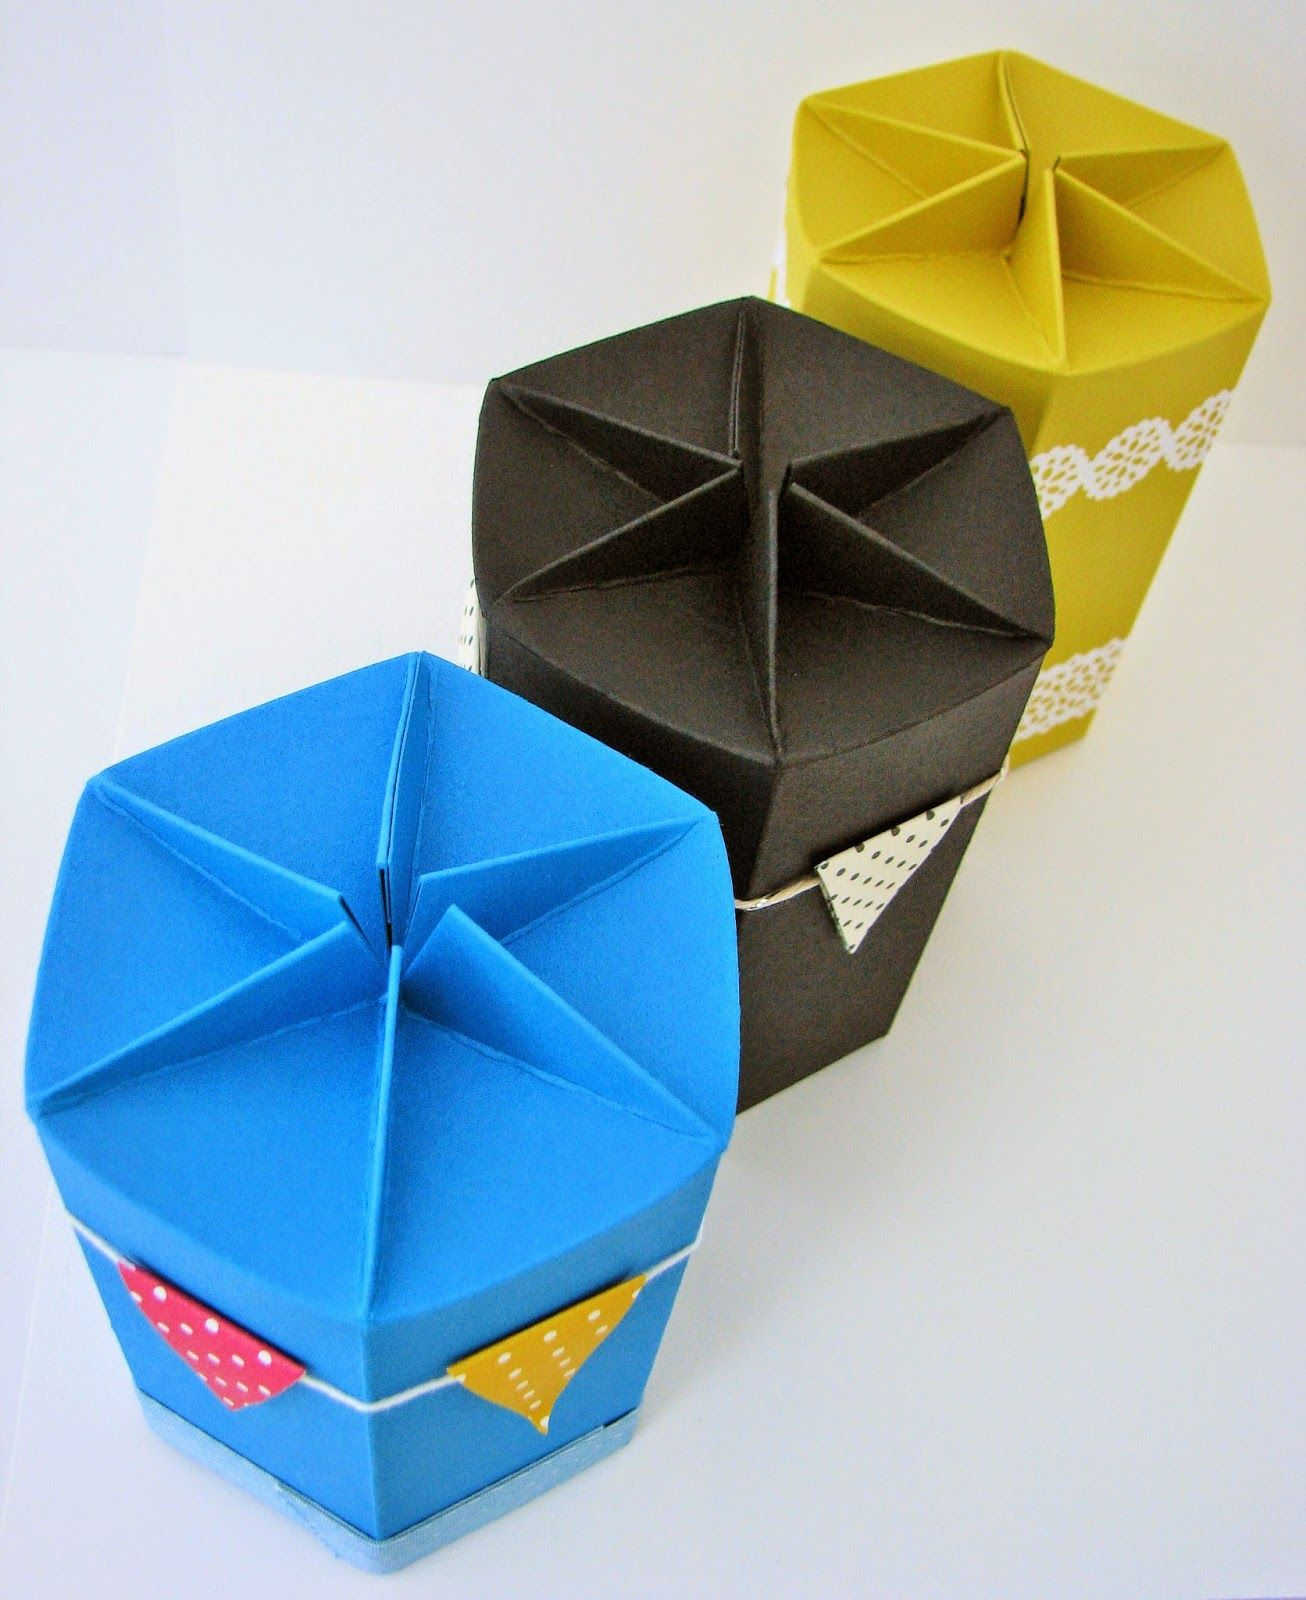 Hexagonal Self Closing Box | Tag, Bags, Boxes and gifts | Pinterest ...